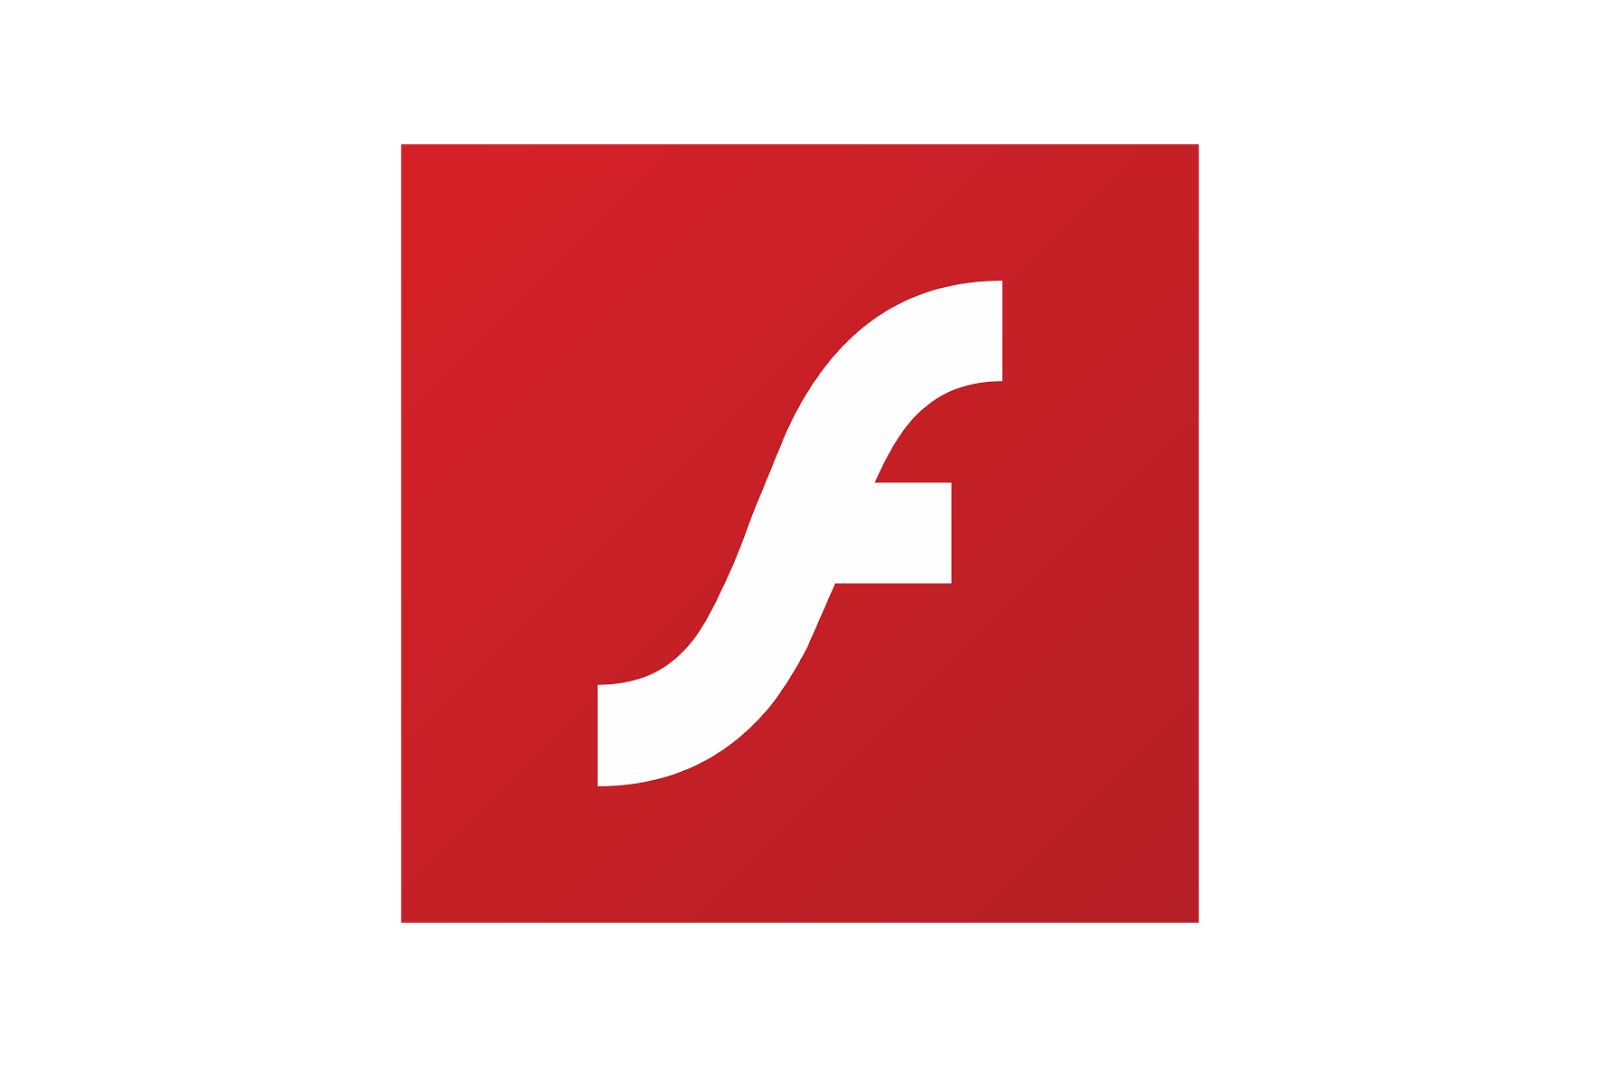 Flash player icon png. Free download as and